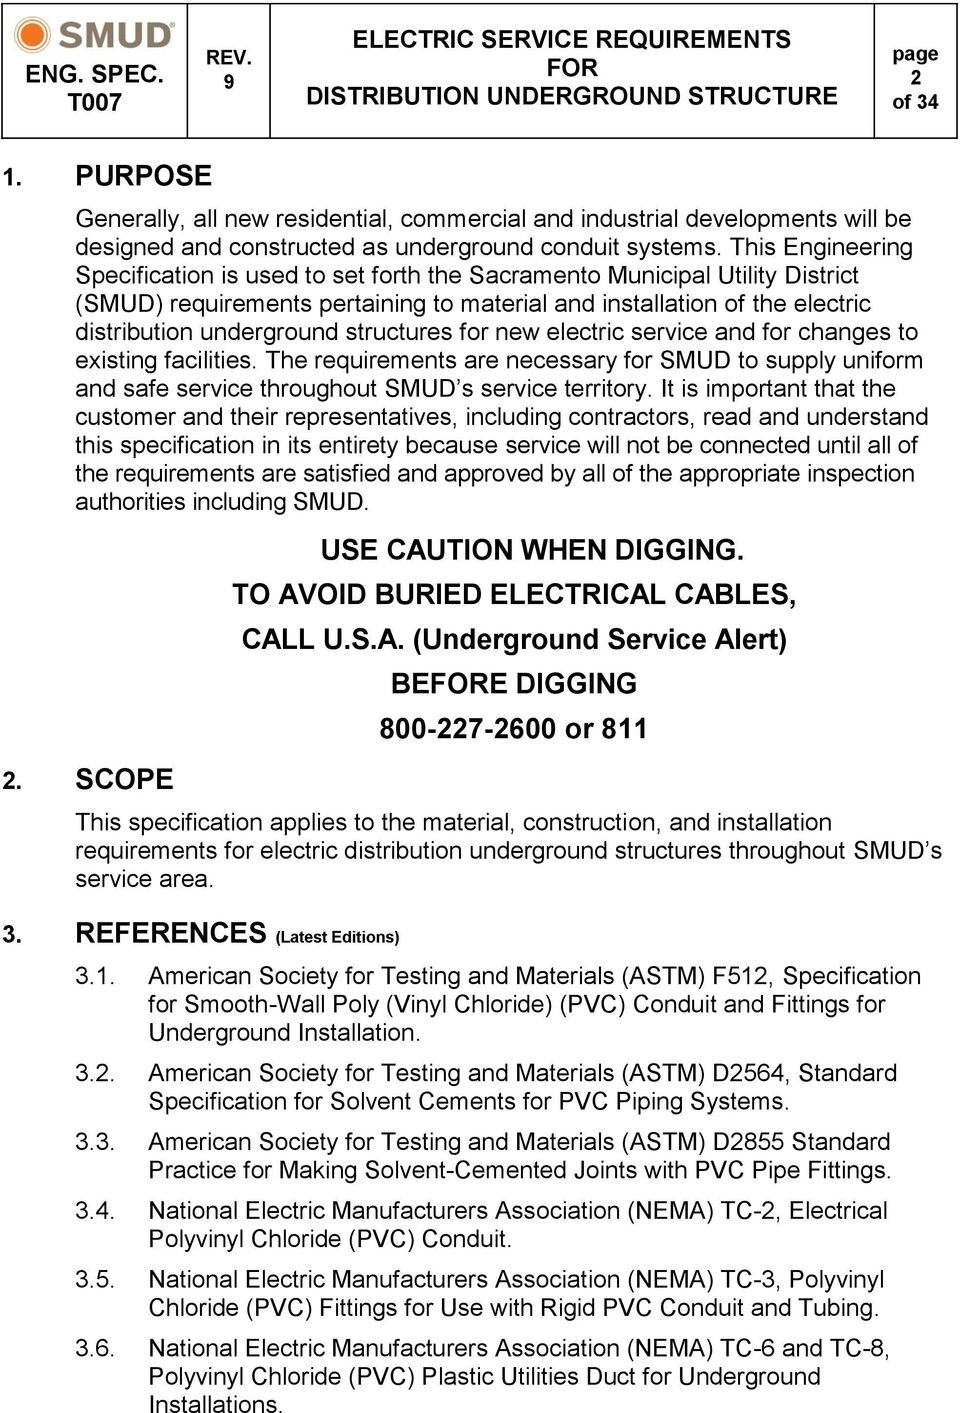 This Engineering Specification is used to set forth the Sacramento Municipal Utility District (SMUD) requirements pertaining to material and installation of the electric distribution underground